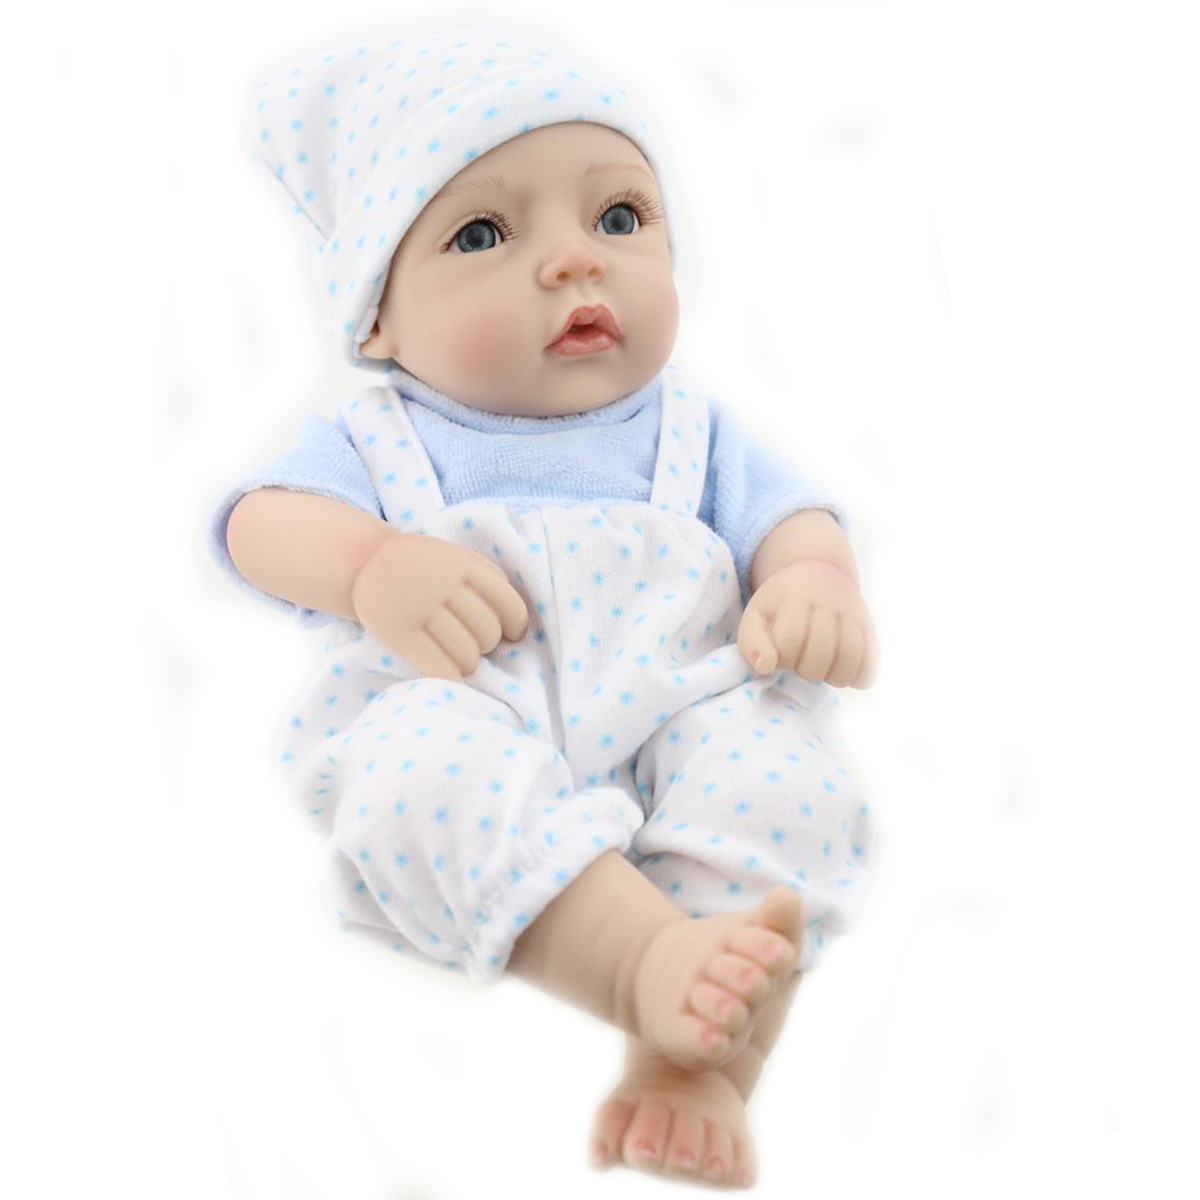 11inch Handmade Reborn Baby Doll Lifelike Realistic Newborn Boy Toy Play House Toys